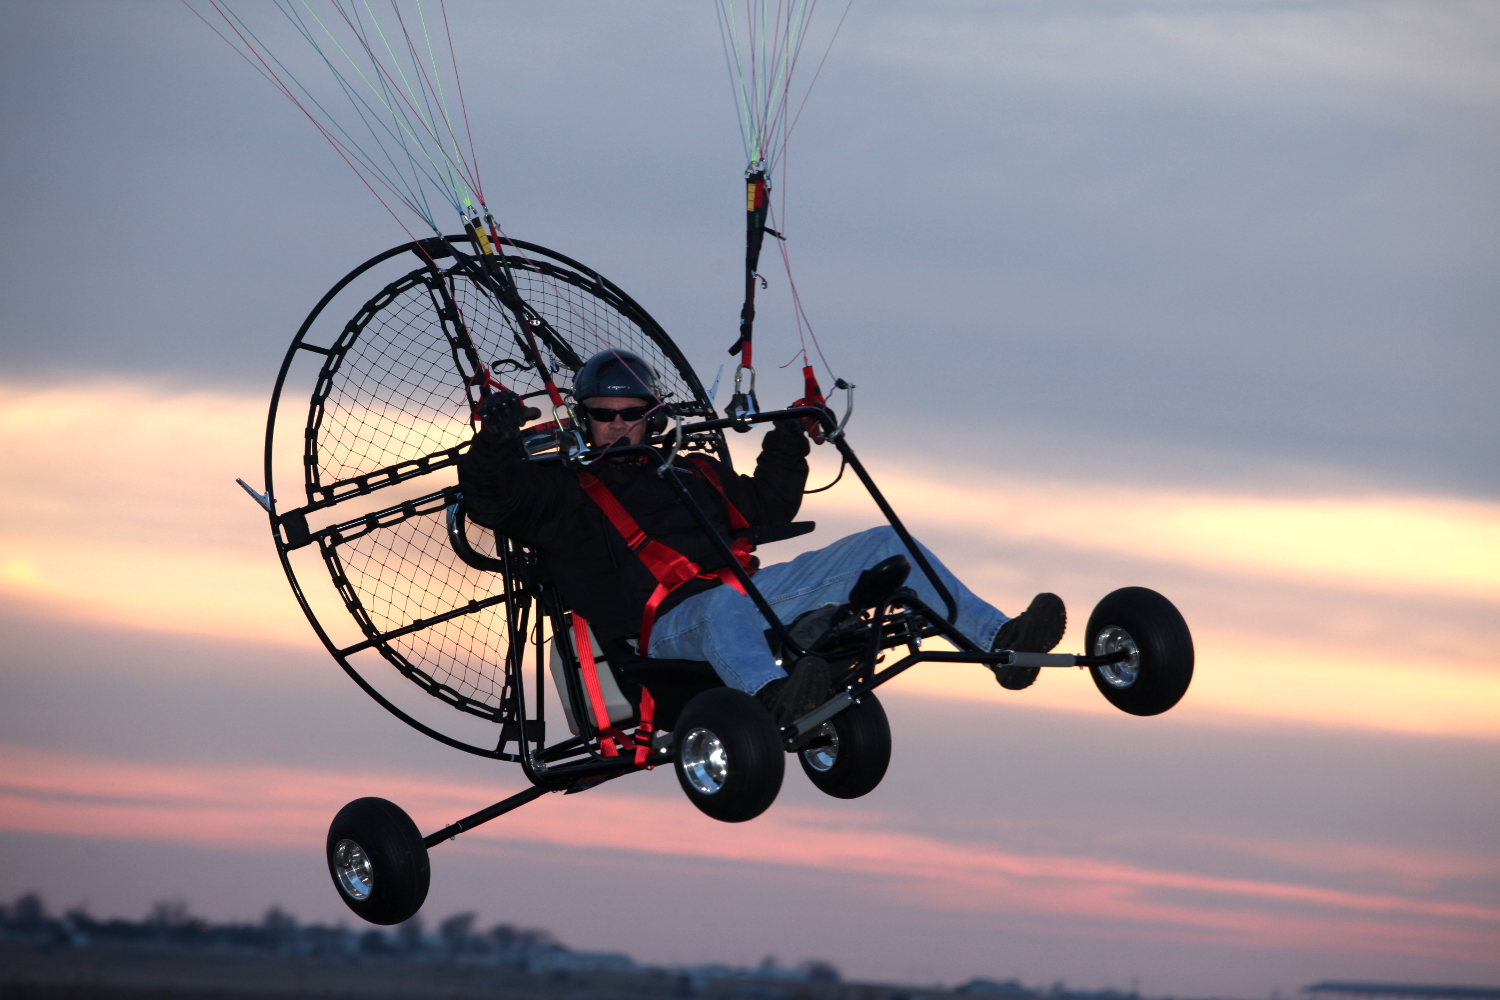 Utah Powered Paragliding Paramotor Quad Package Deal